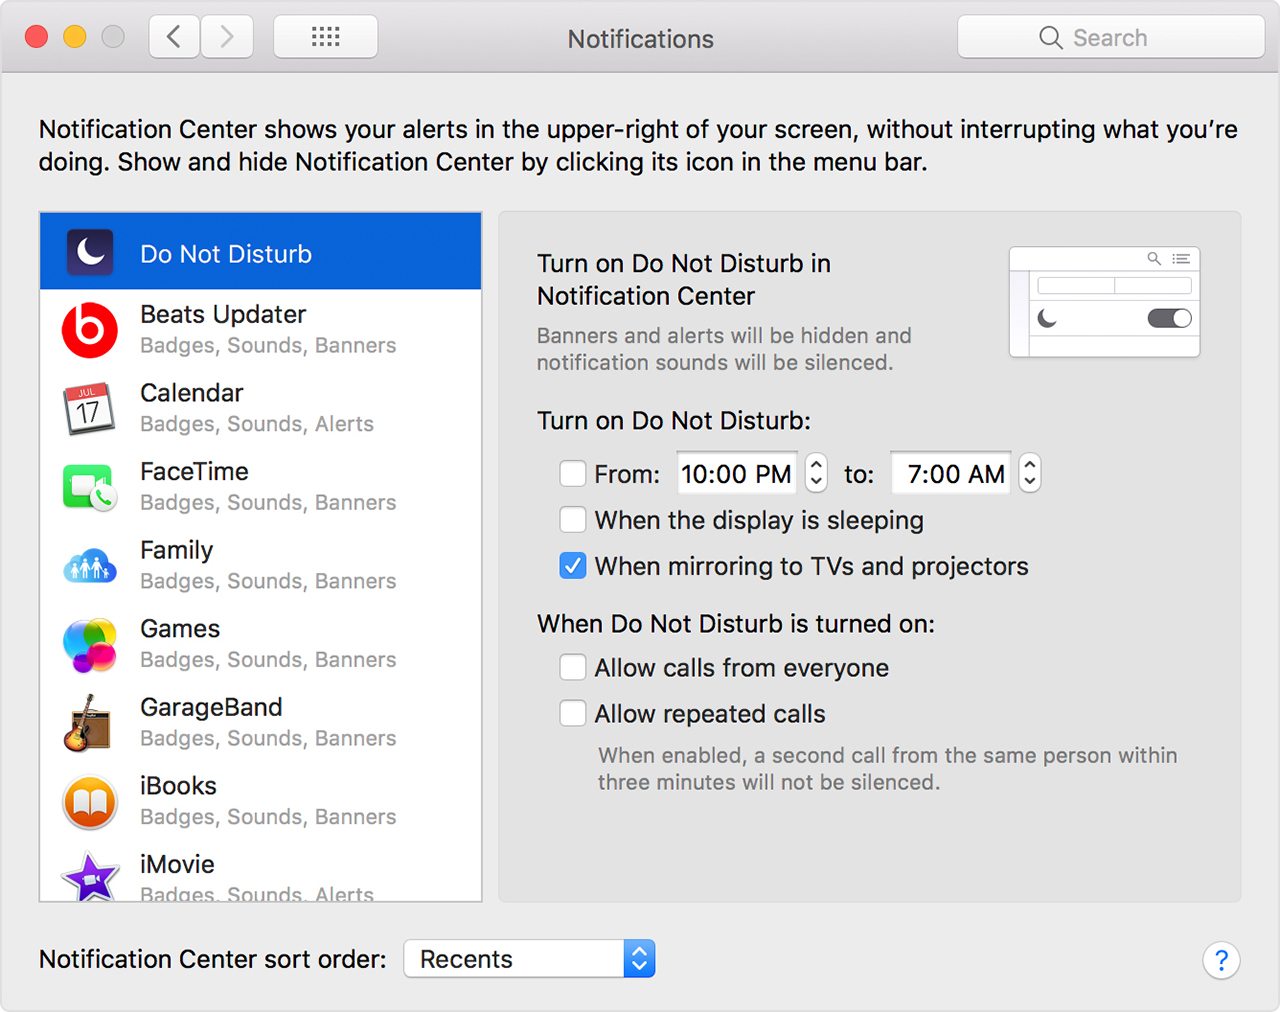 Do not disturb in Notifications preferences